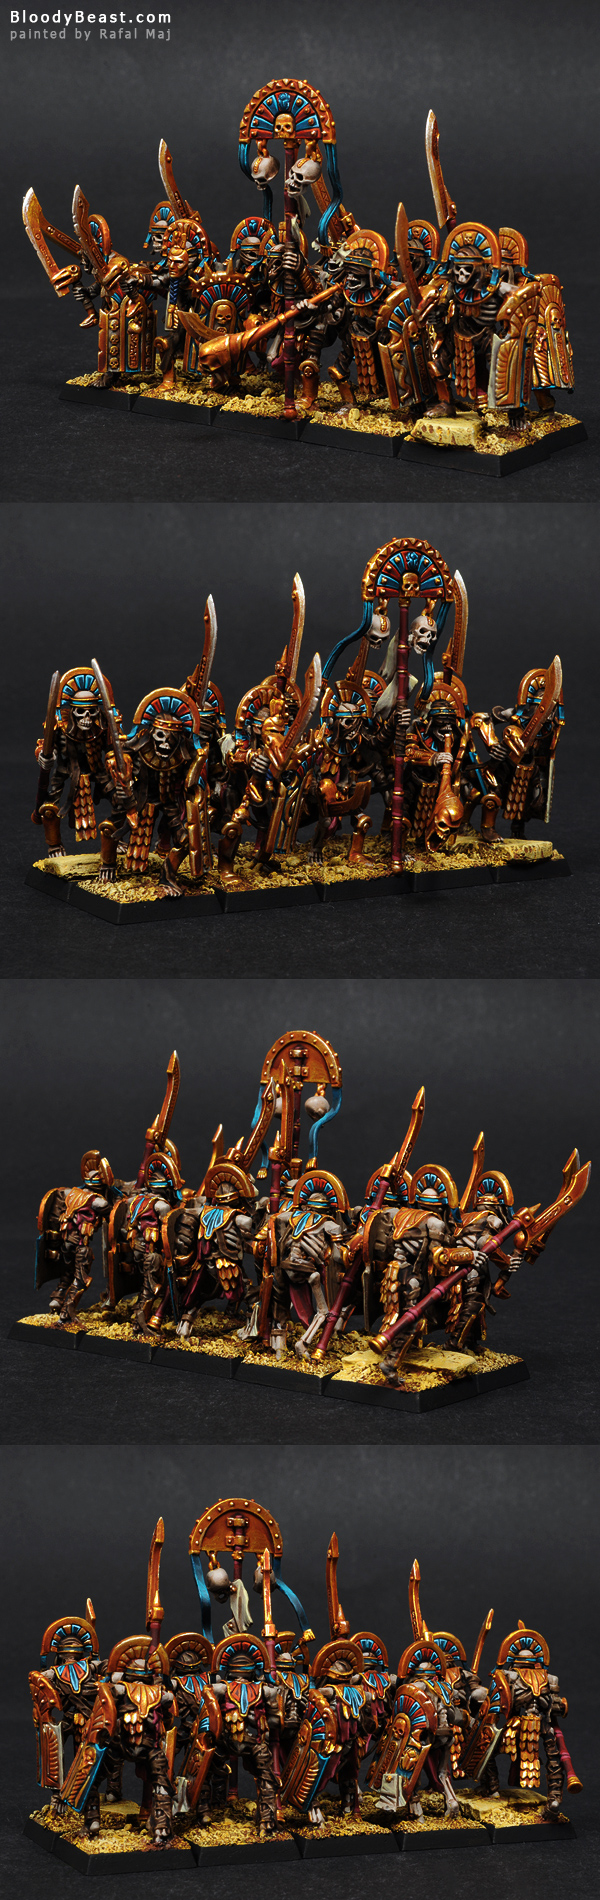 Tomb Kings Tomb Guards painted by Rafal Maj (BloodyBeast.com)